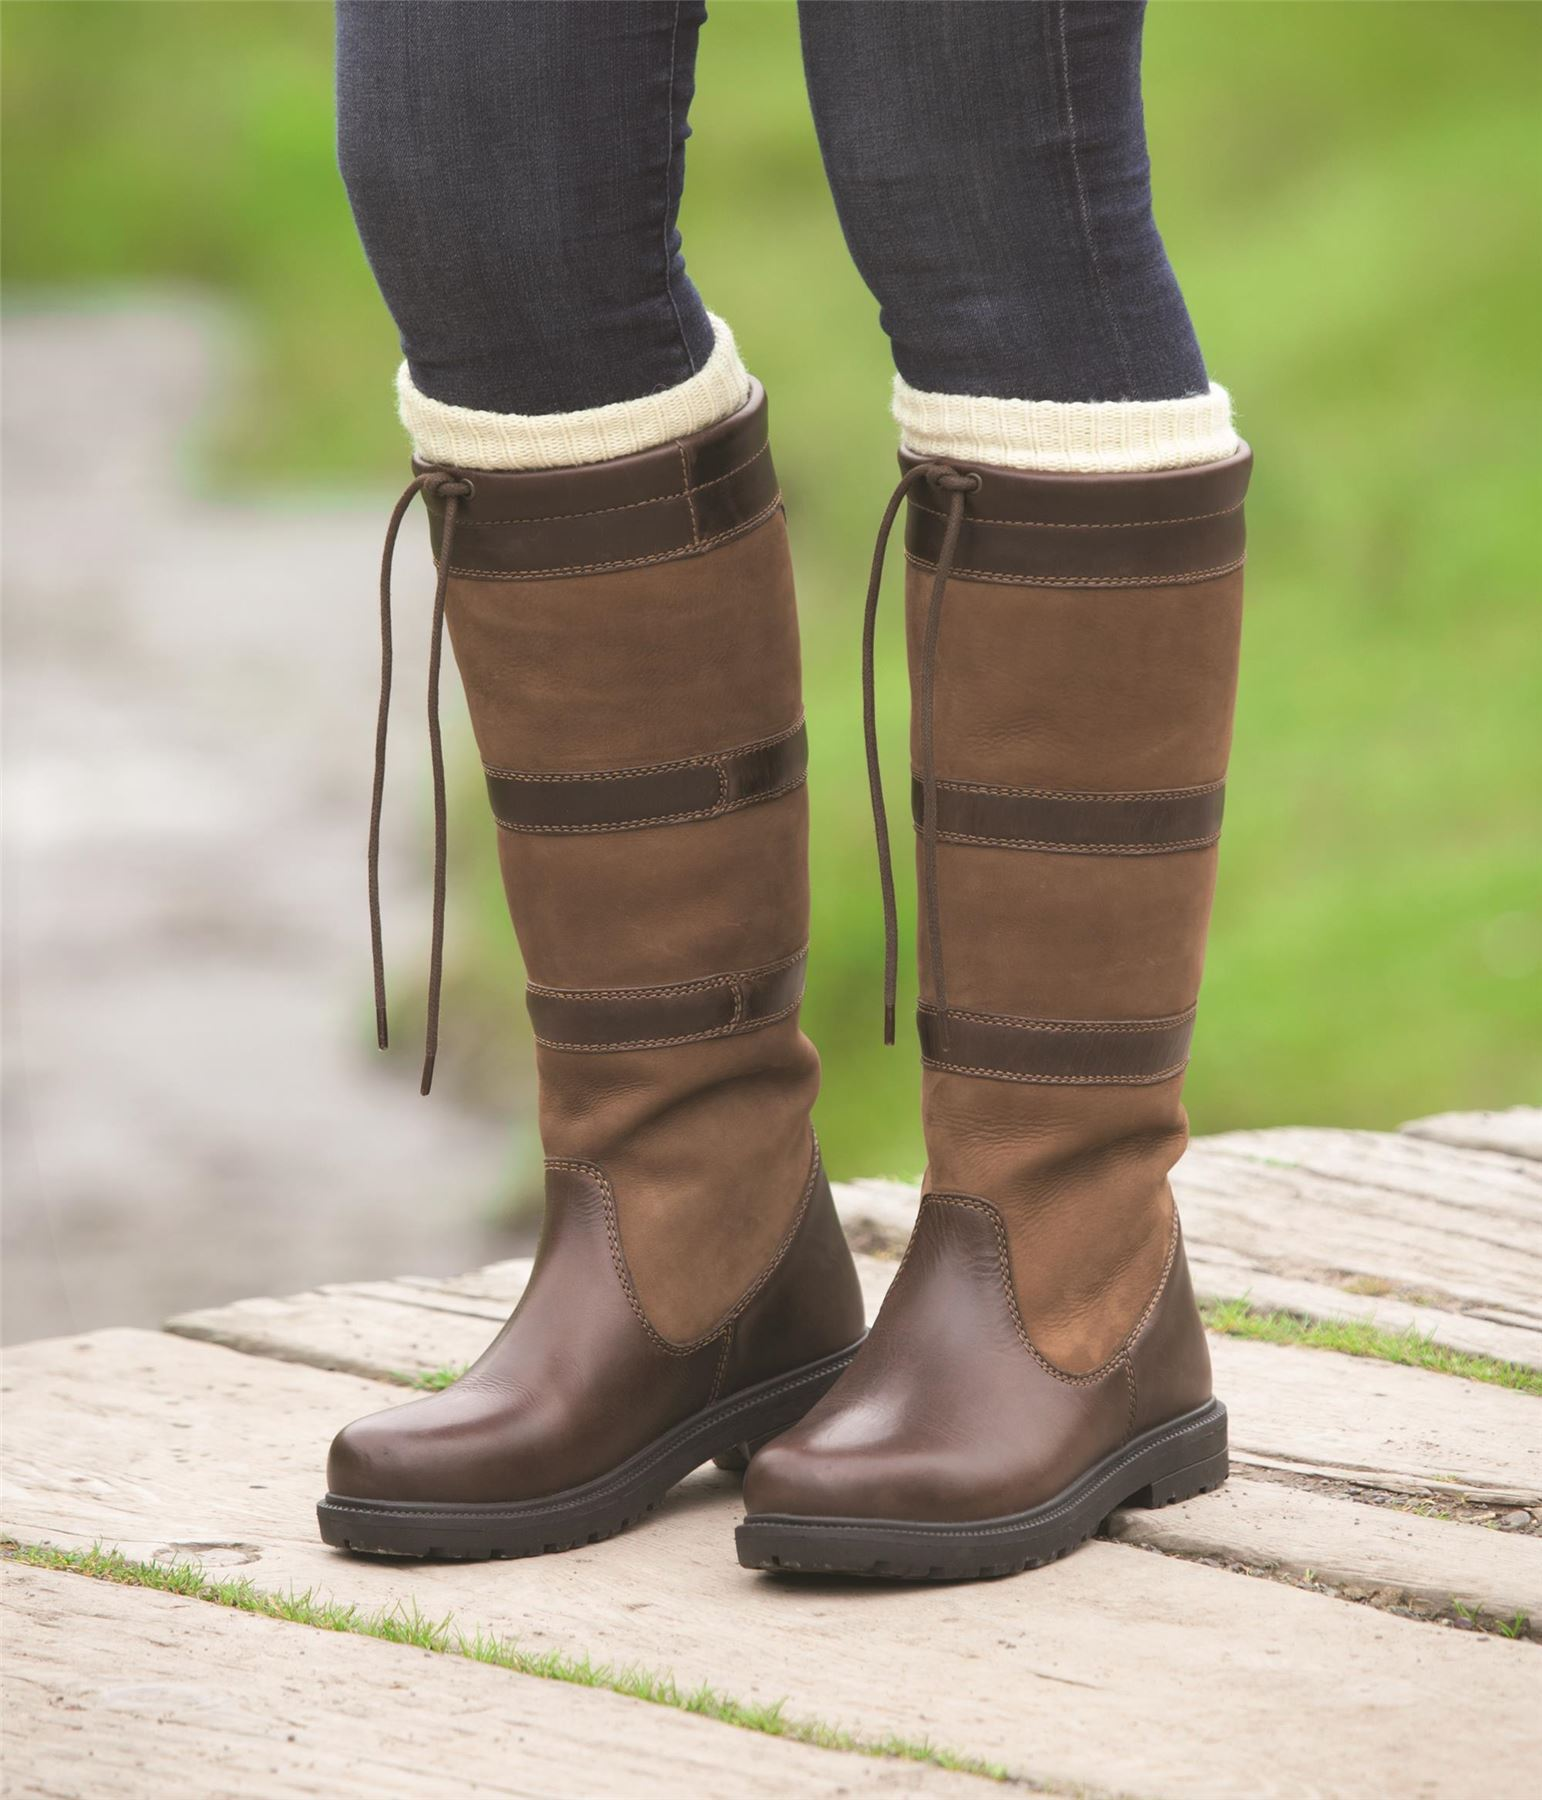 Outdoor - / Riding boots FxnRPwwVvI